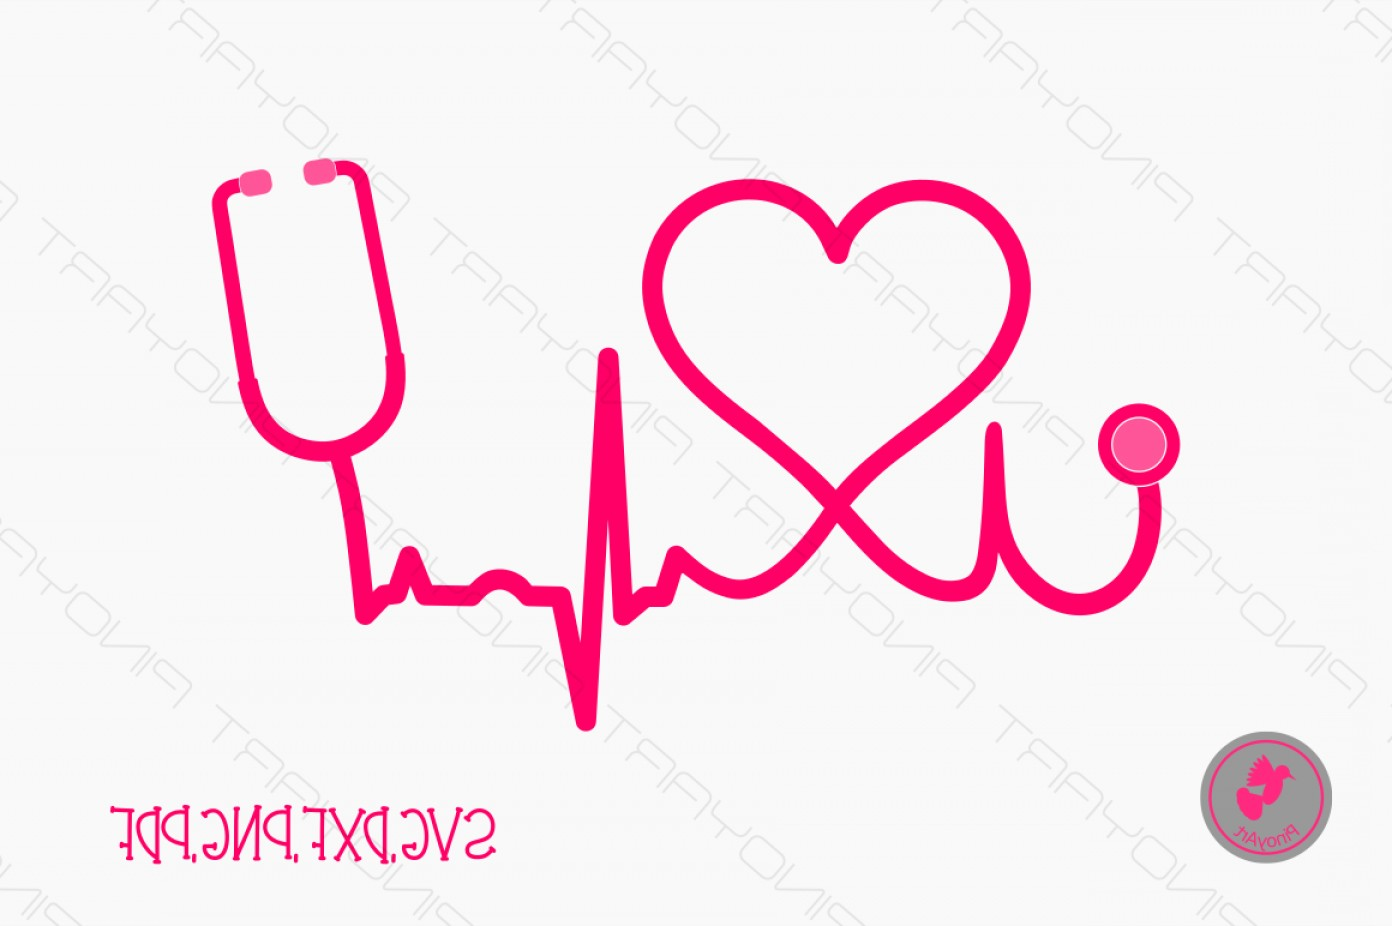 Nurse Vector Art SVG: Nurse Svg Nurse Dxf Nurse Svg File Stethoscope Svg File Doctor Svg Svg